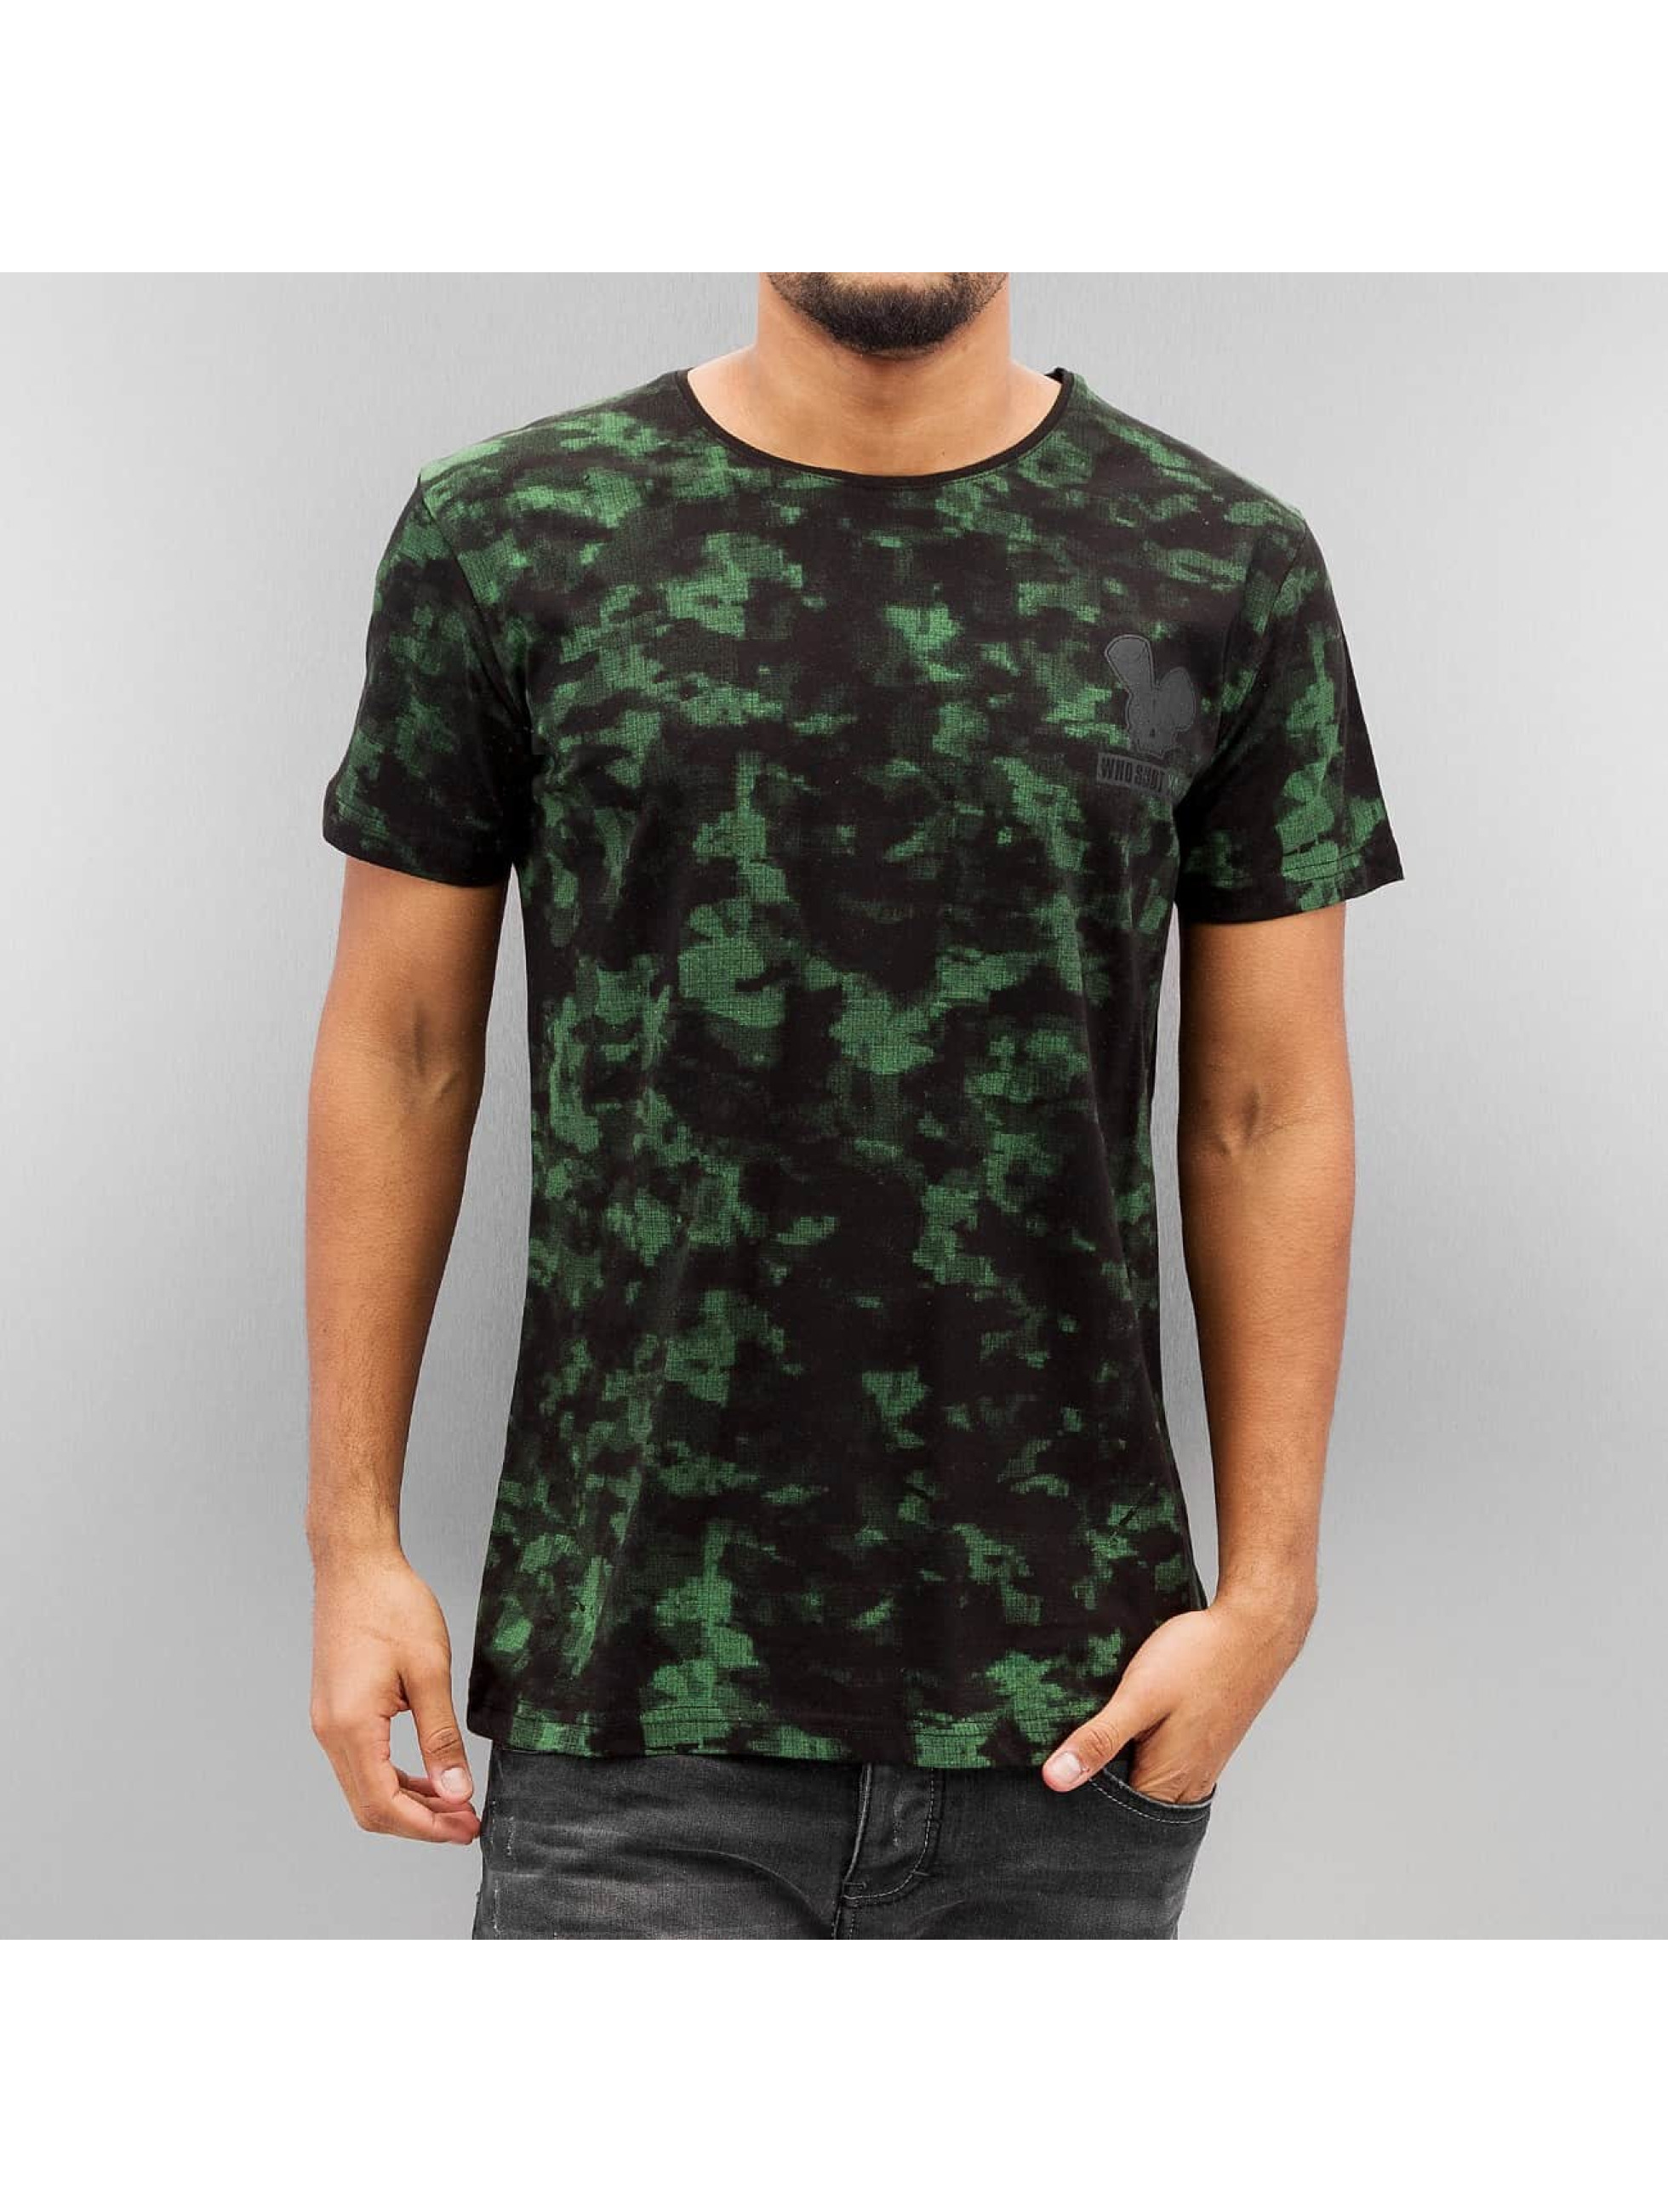 Who Shot Ya? Haut / T-Shirt Fashion en camouflage